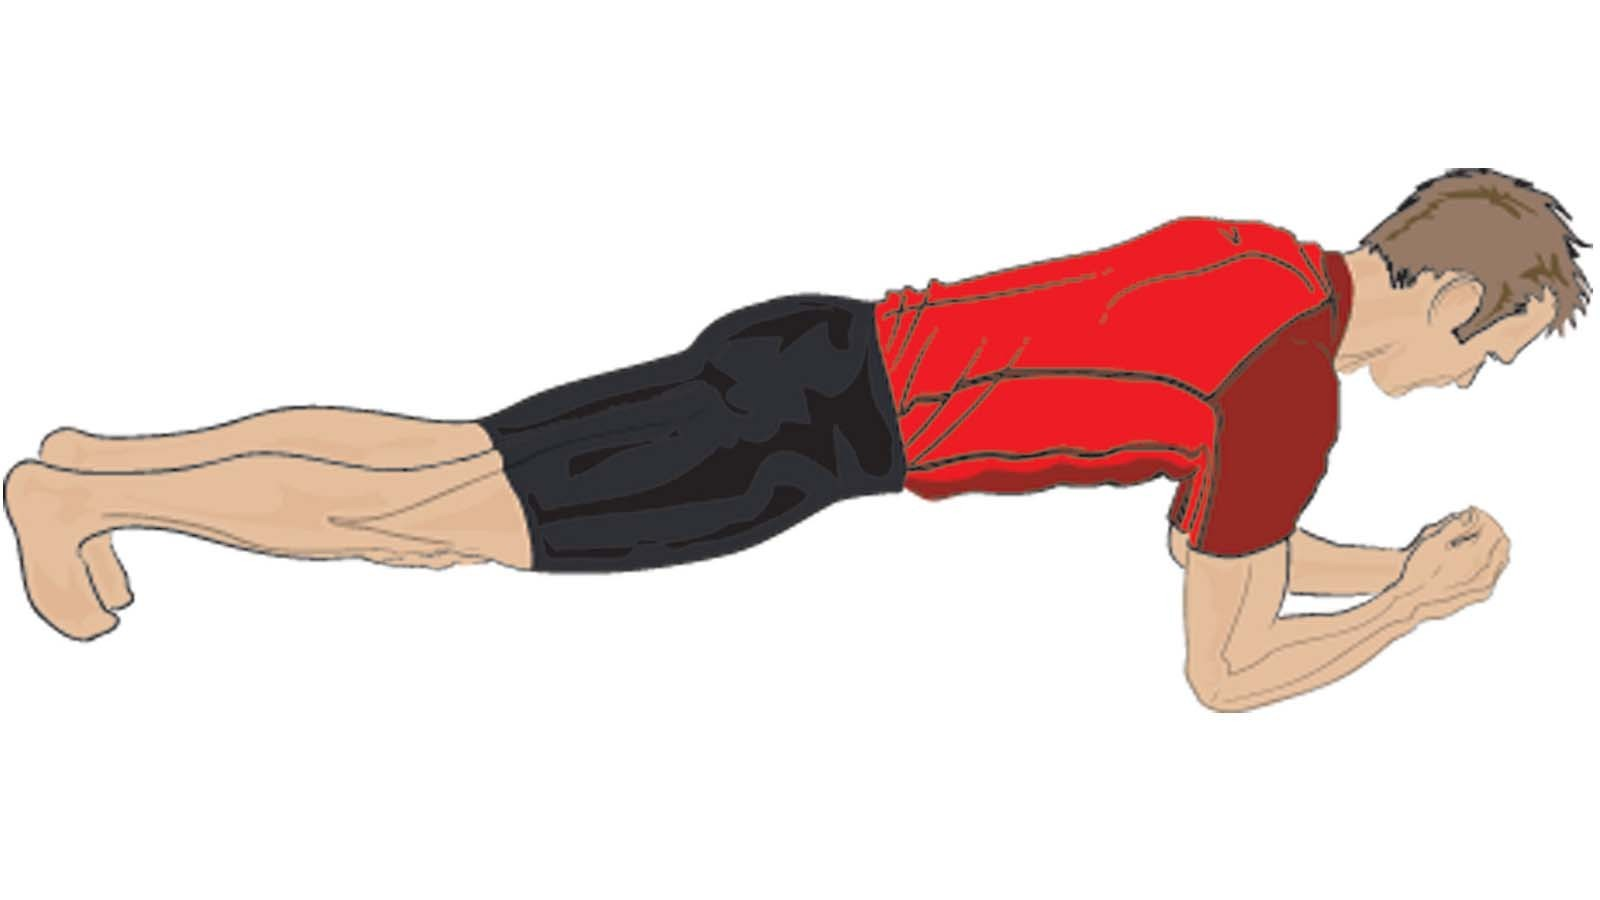 Support your weight on your elbows and feet to do the plank